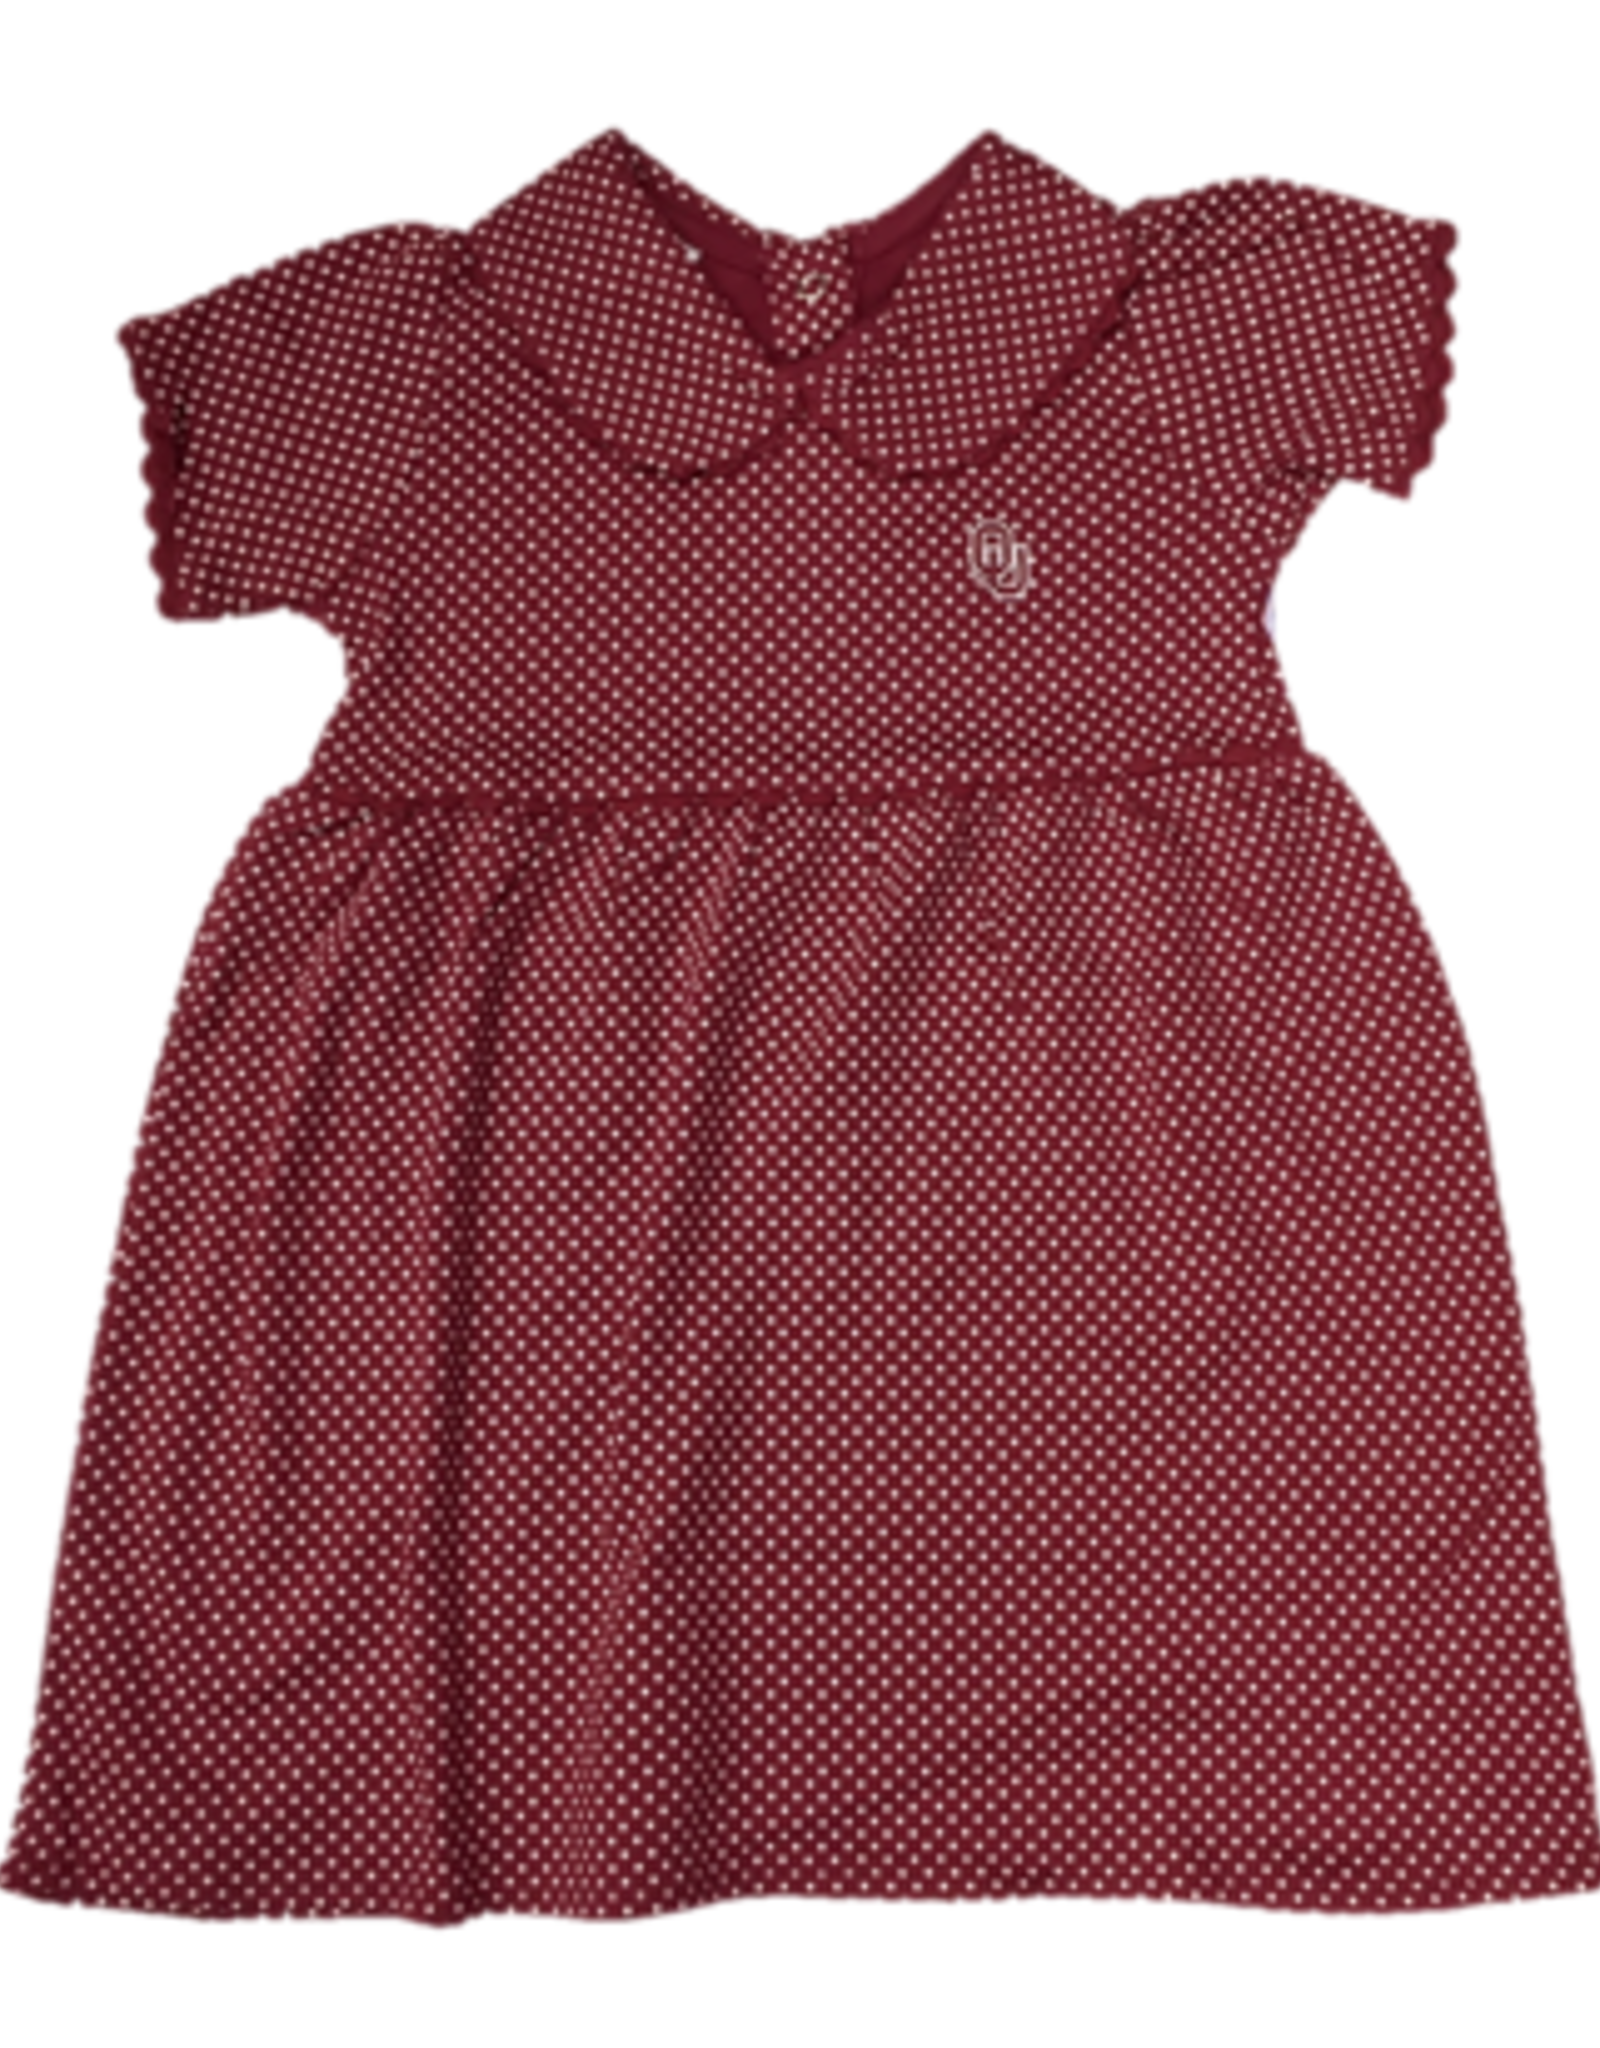 Two Feet Ahead Toddler OU Peter Pan Dress